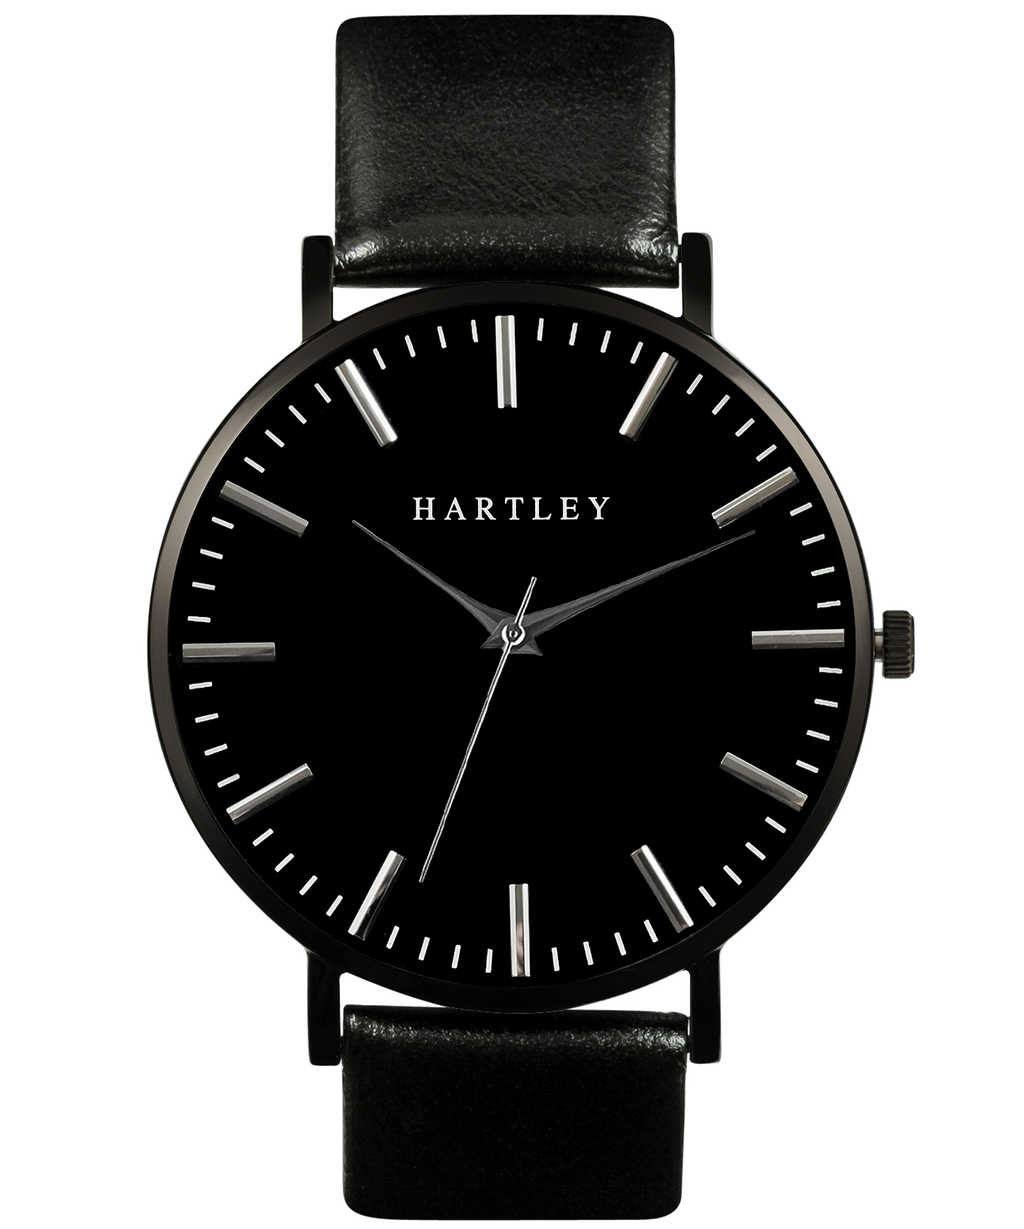 HARTLEY ORIGINALS Black on Black